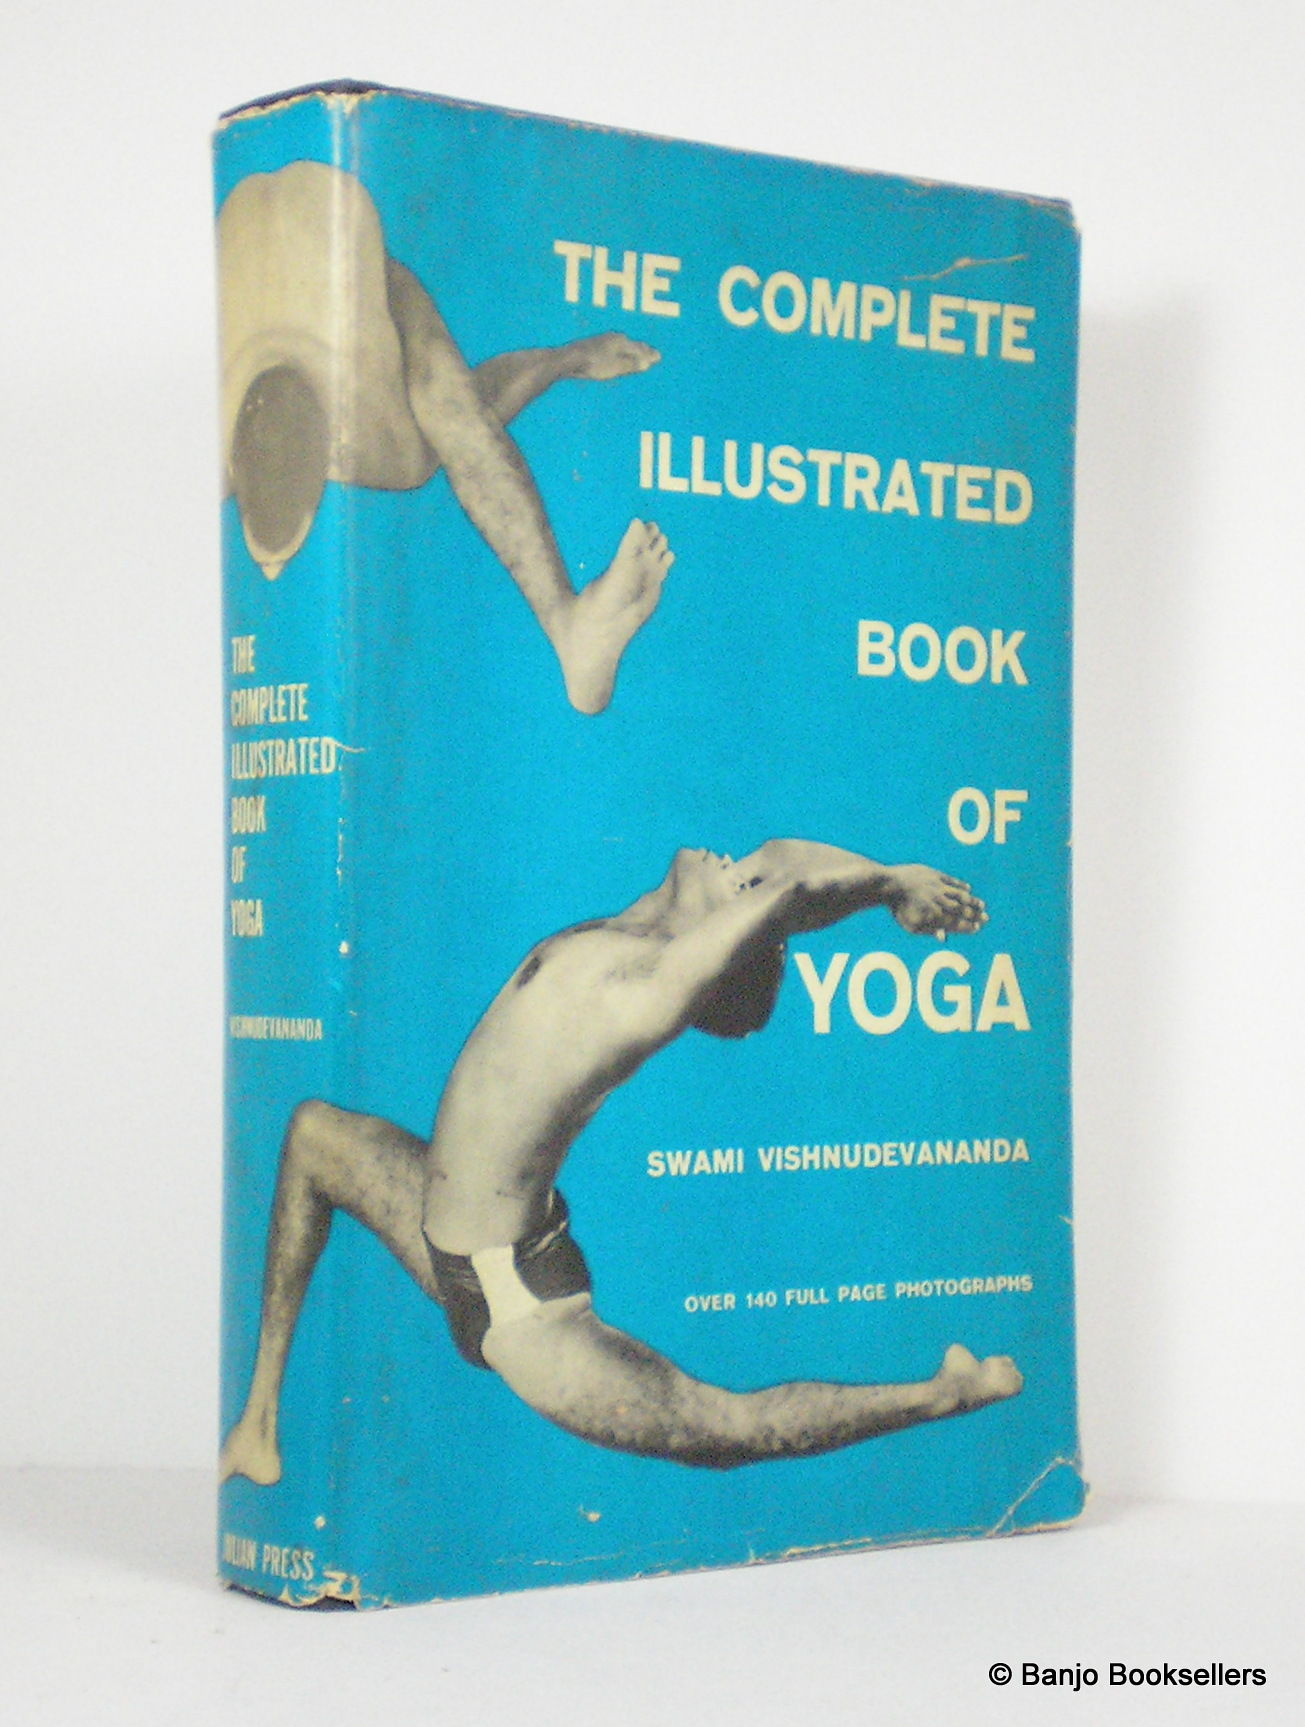 Illustrated Book Cover Yoga : The complete illustrated book of yoga by vishnudevananda